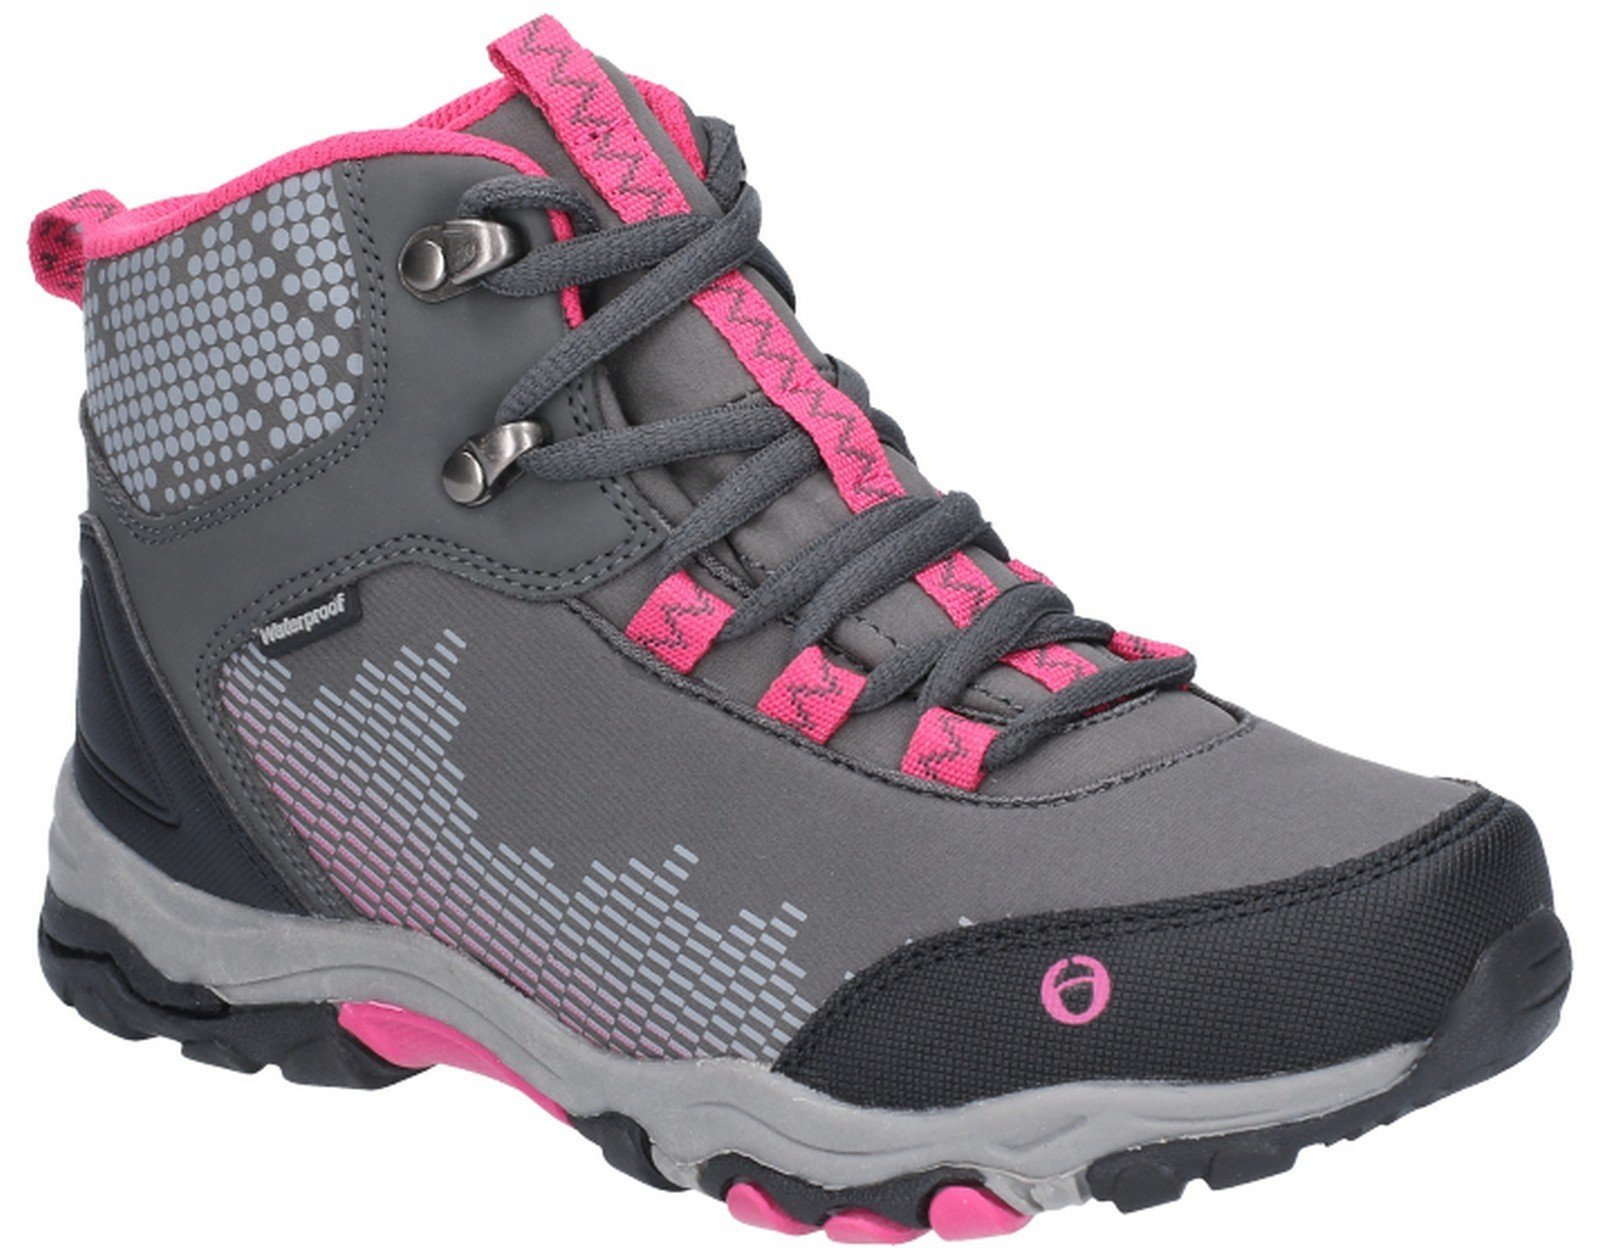 Cotswold Kid's Ducklington Lace Up Hiking Waterproof Boot Multicolor 28251 - Grey/Pink 10.5